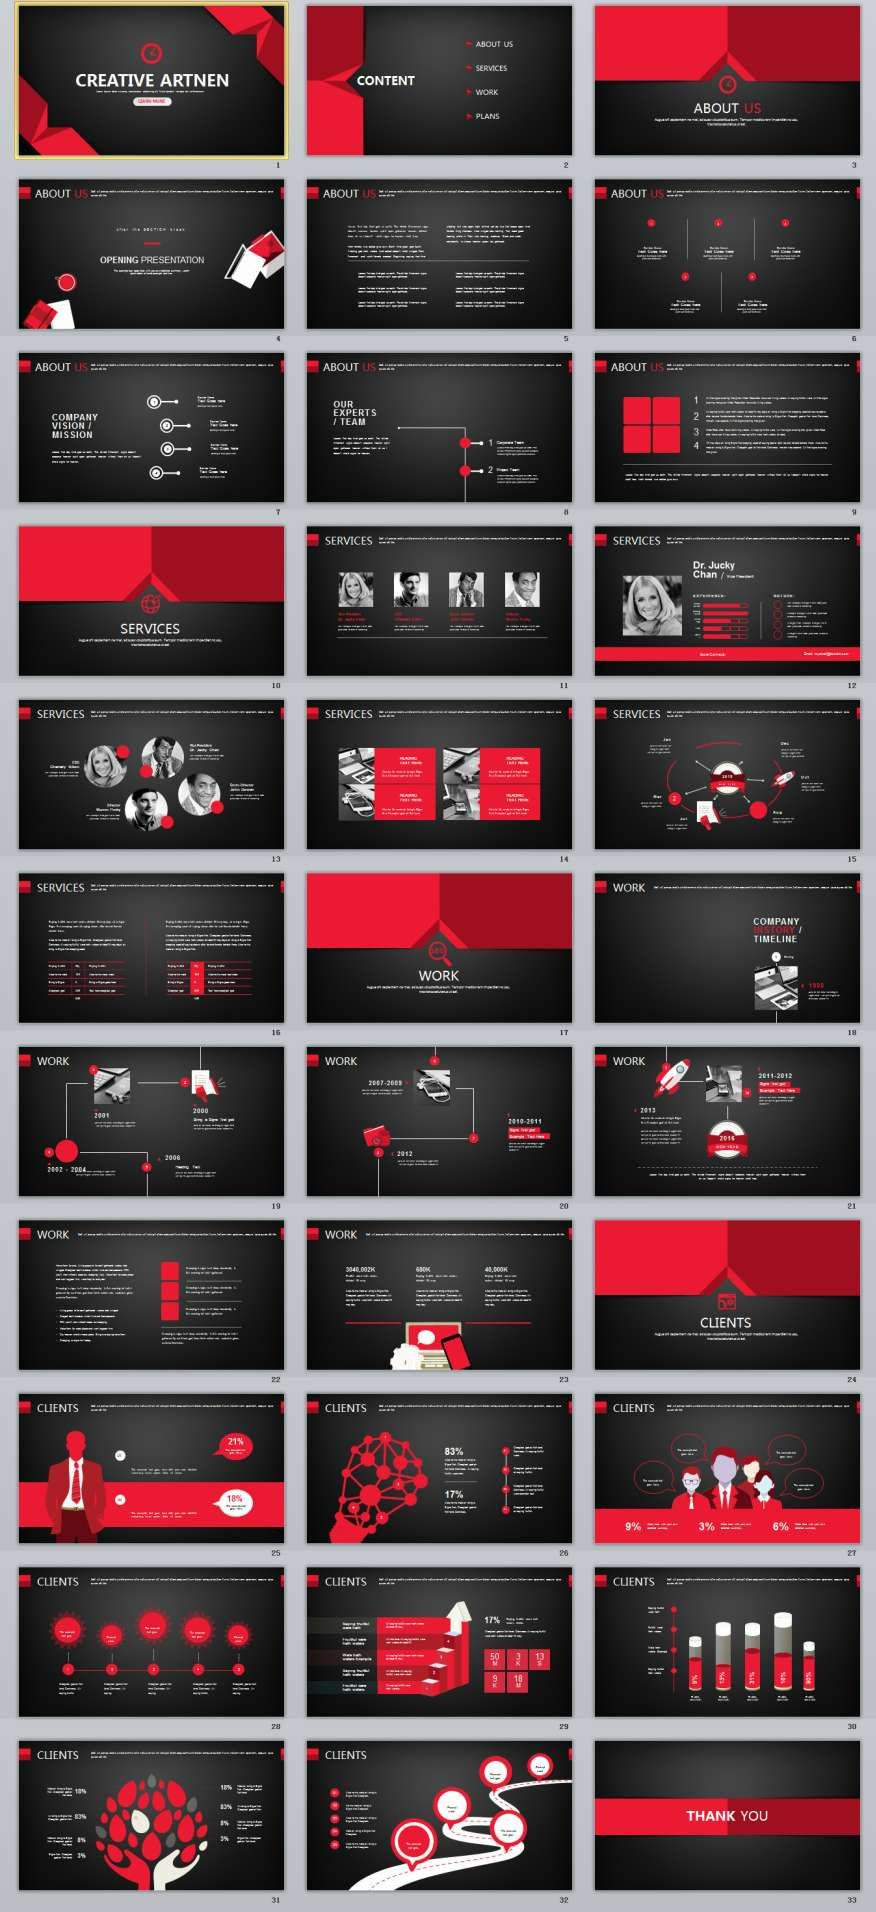 33 red black business powerpoint template 2018 business 33 red black business powerpoint template toneelgroepblik Choice Image